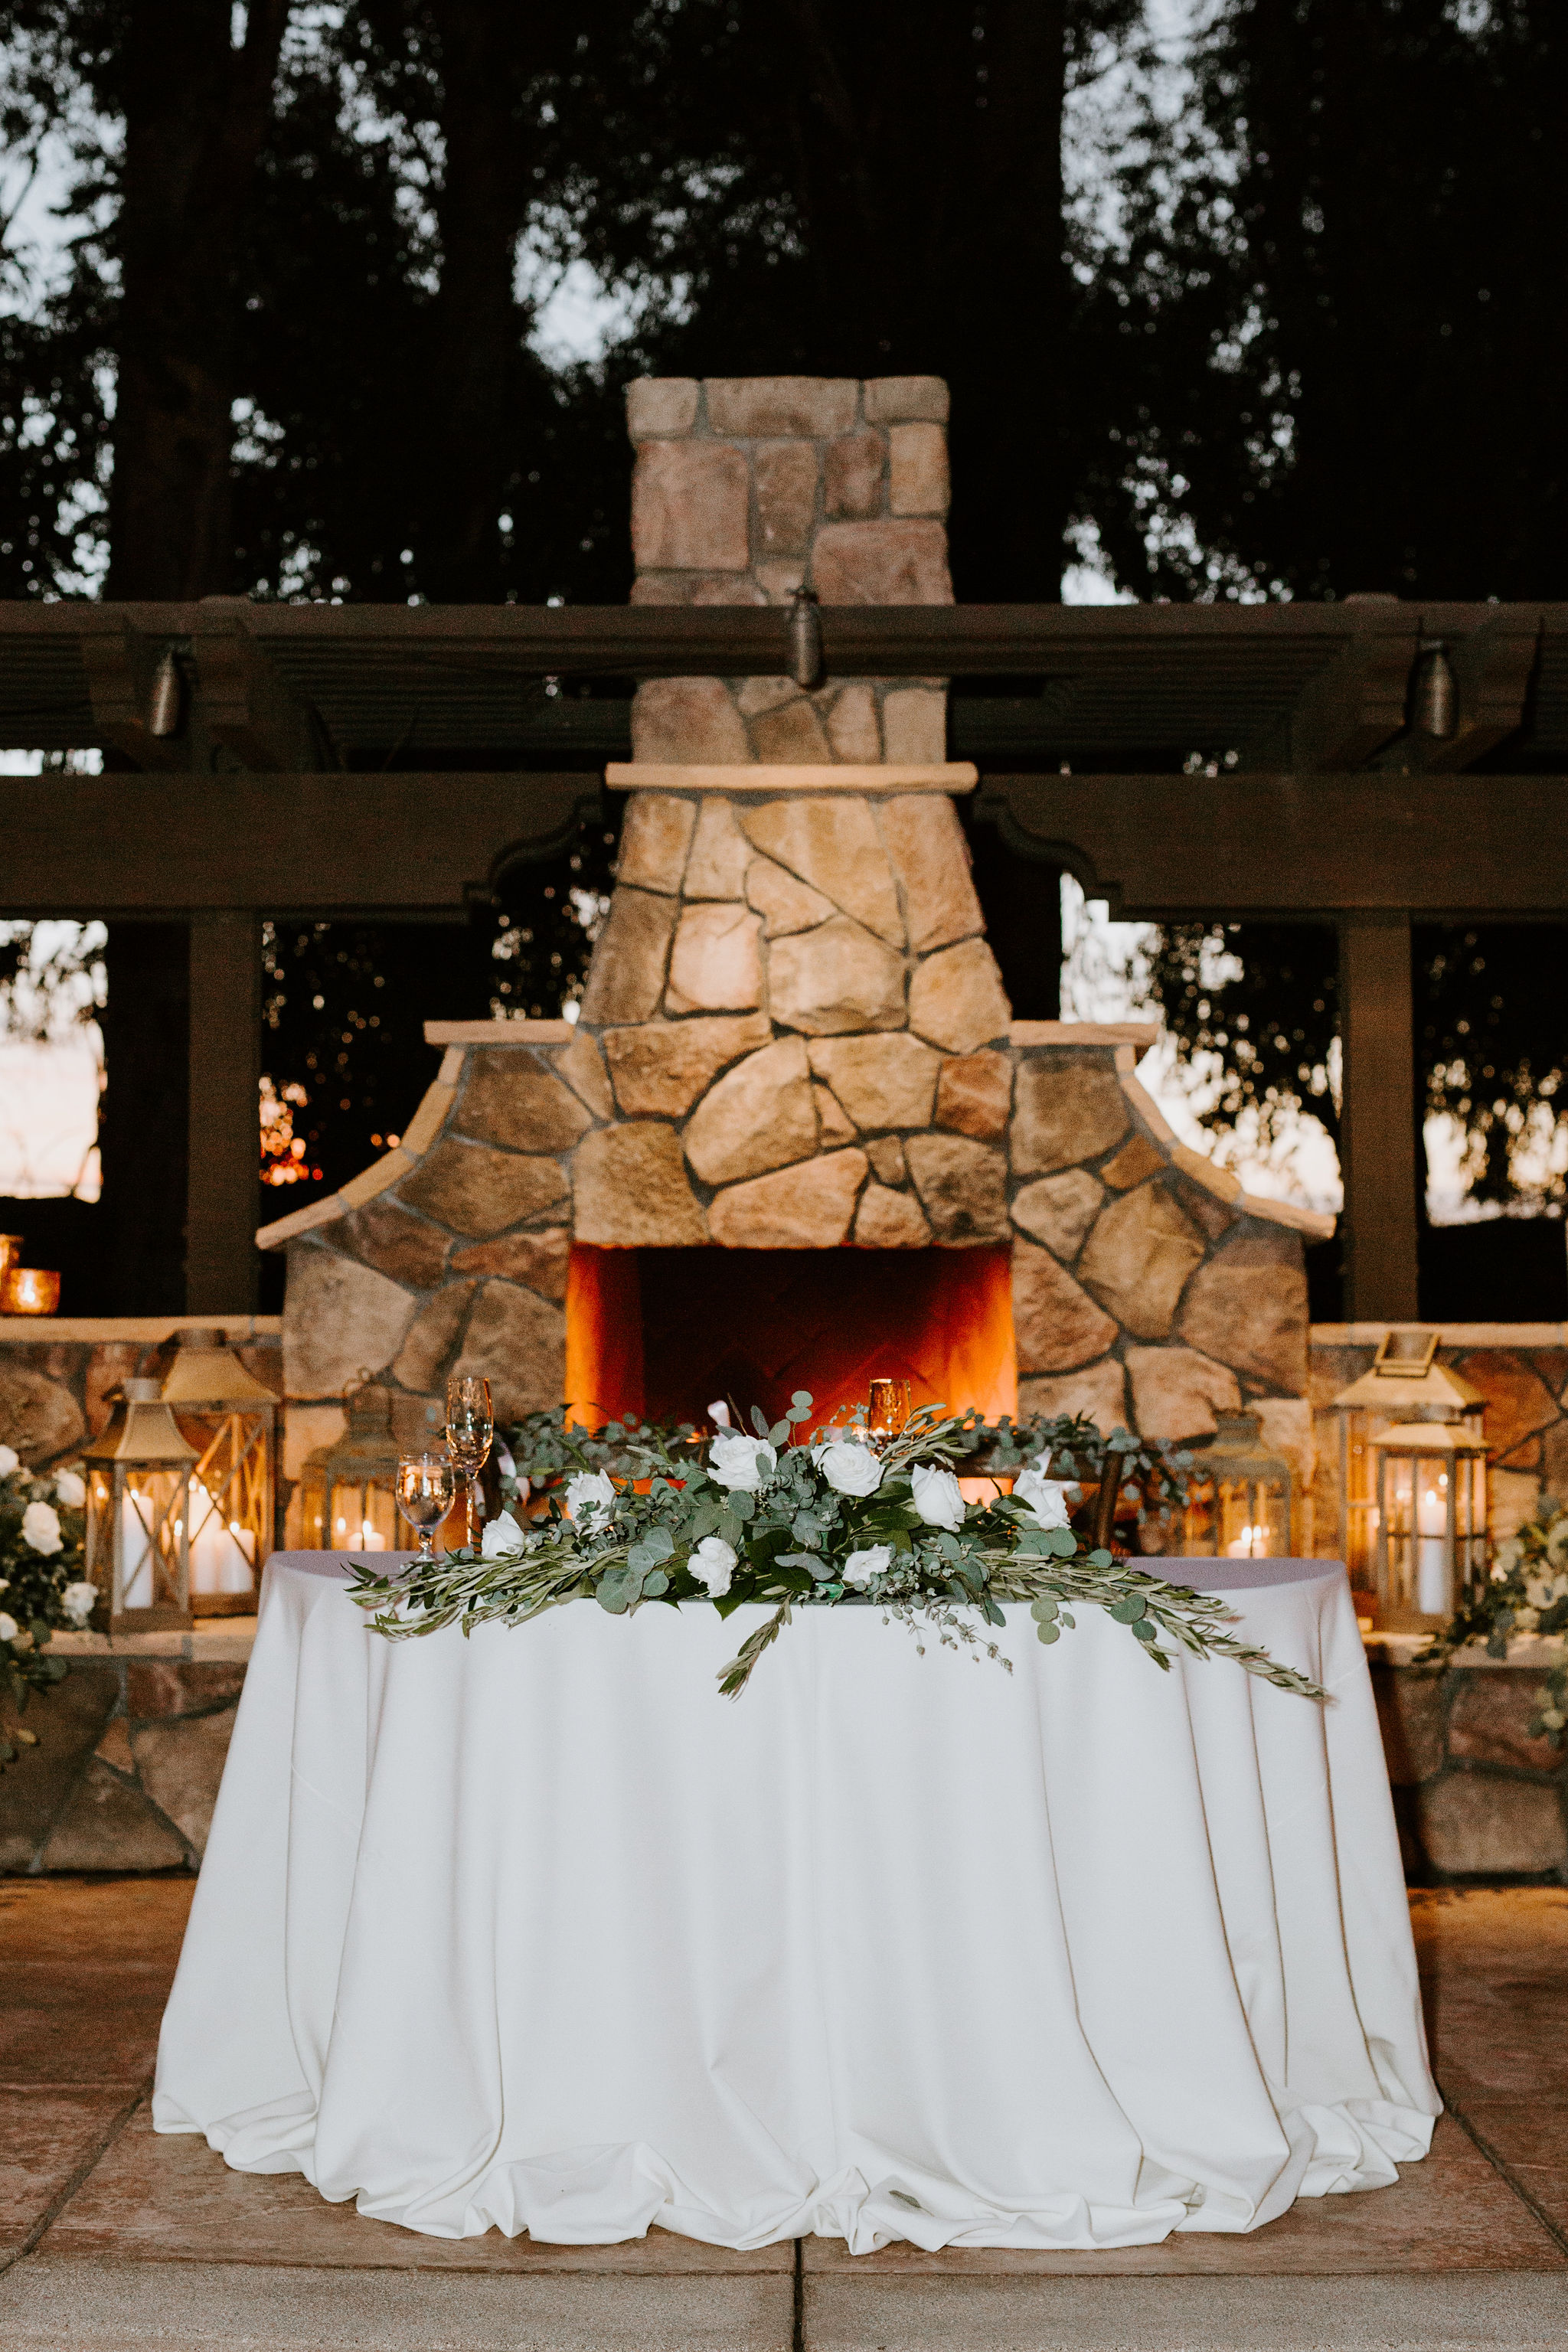 WalnutGroveWedding_Geoff&LyndsiPhotography_Casie&Matt_Reception8.jpg